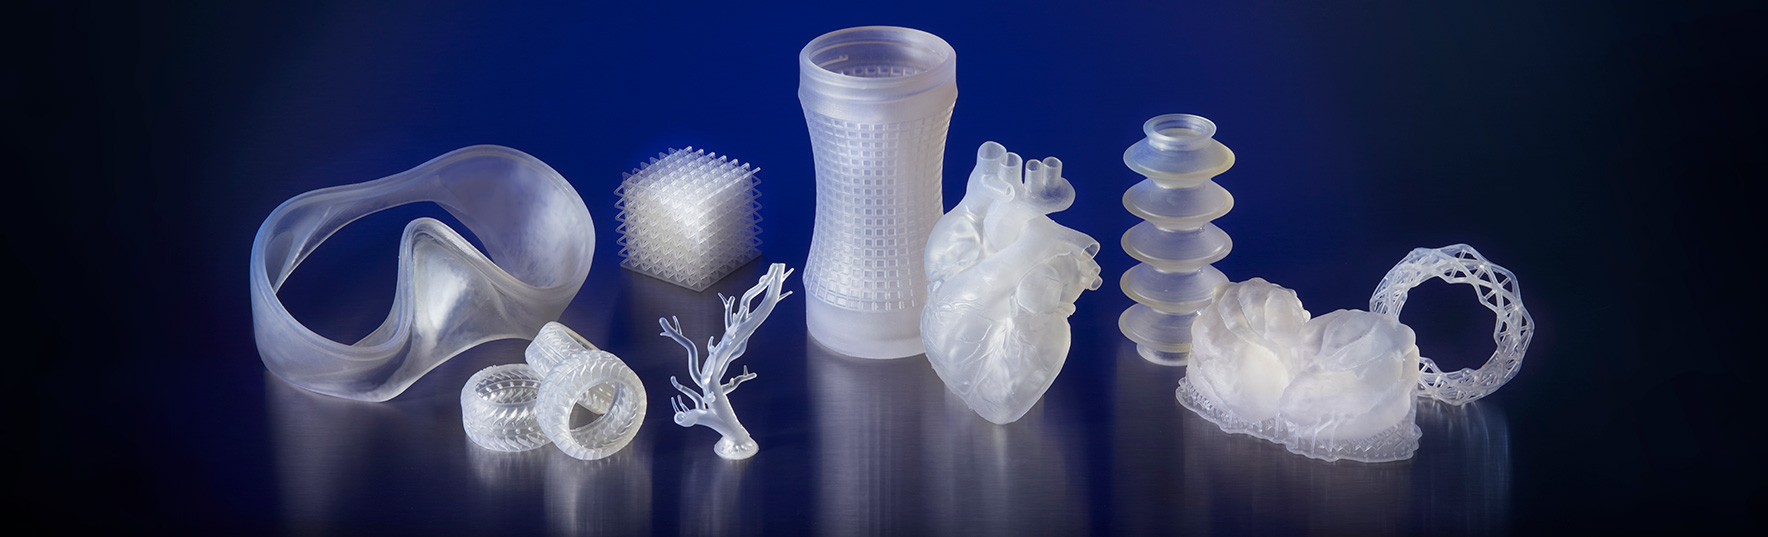 Formlabs Announces New Elastic Resin Material